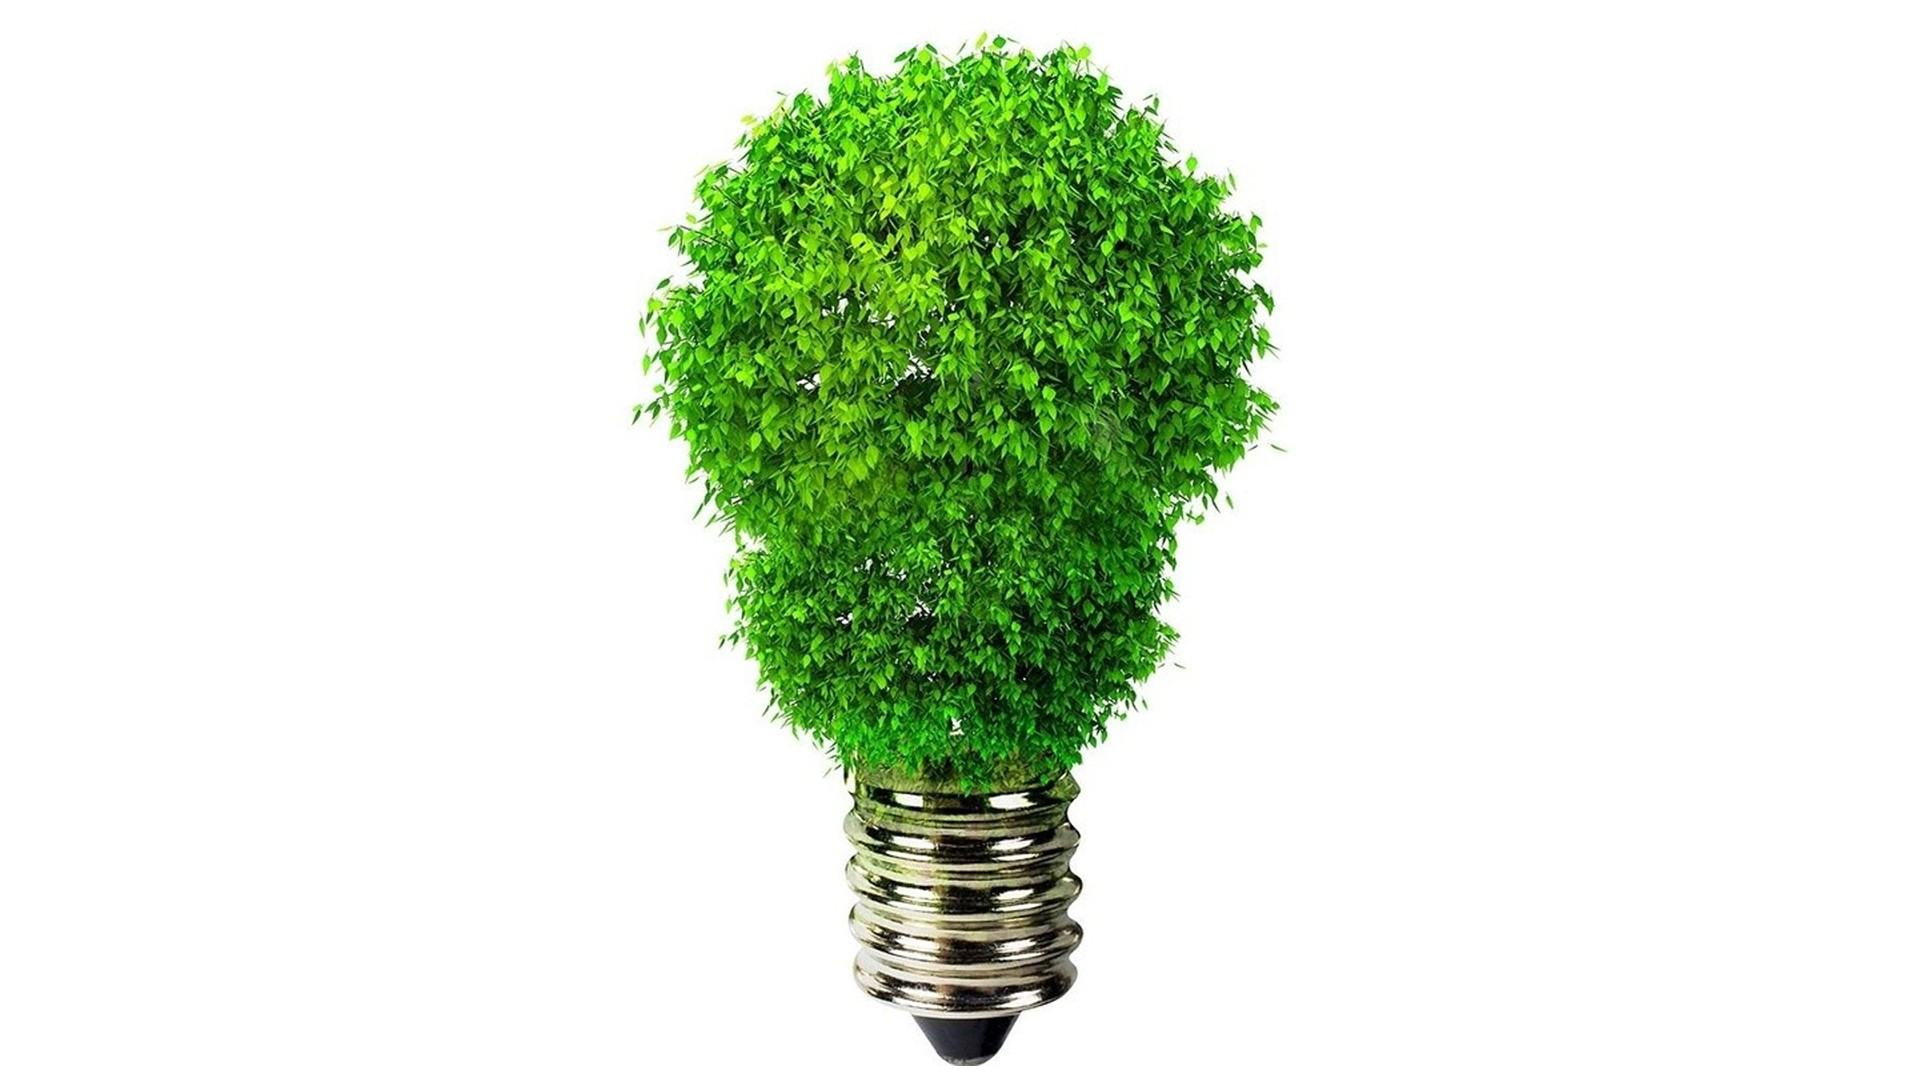 Energy Saving Free Wallpaper and Background